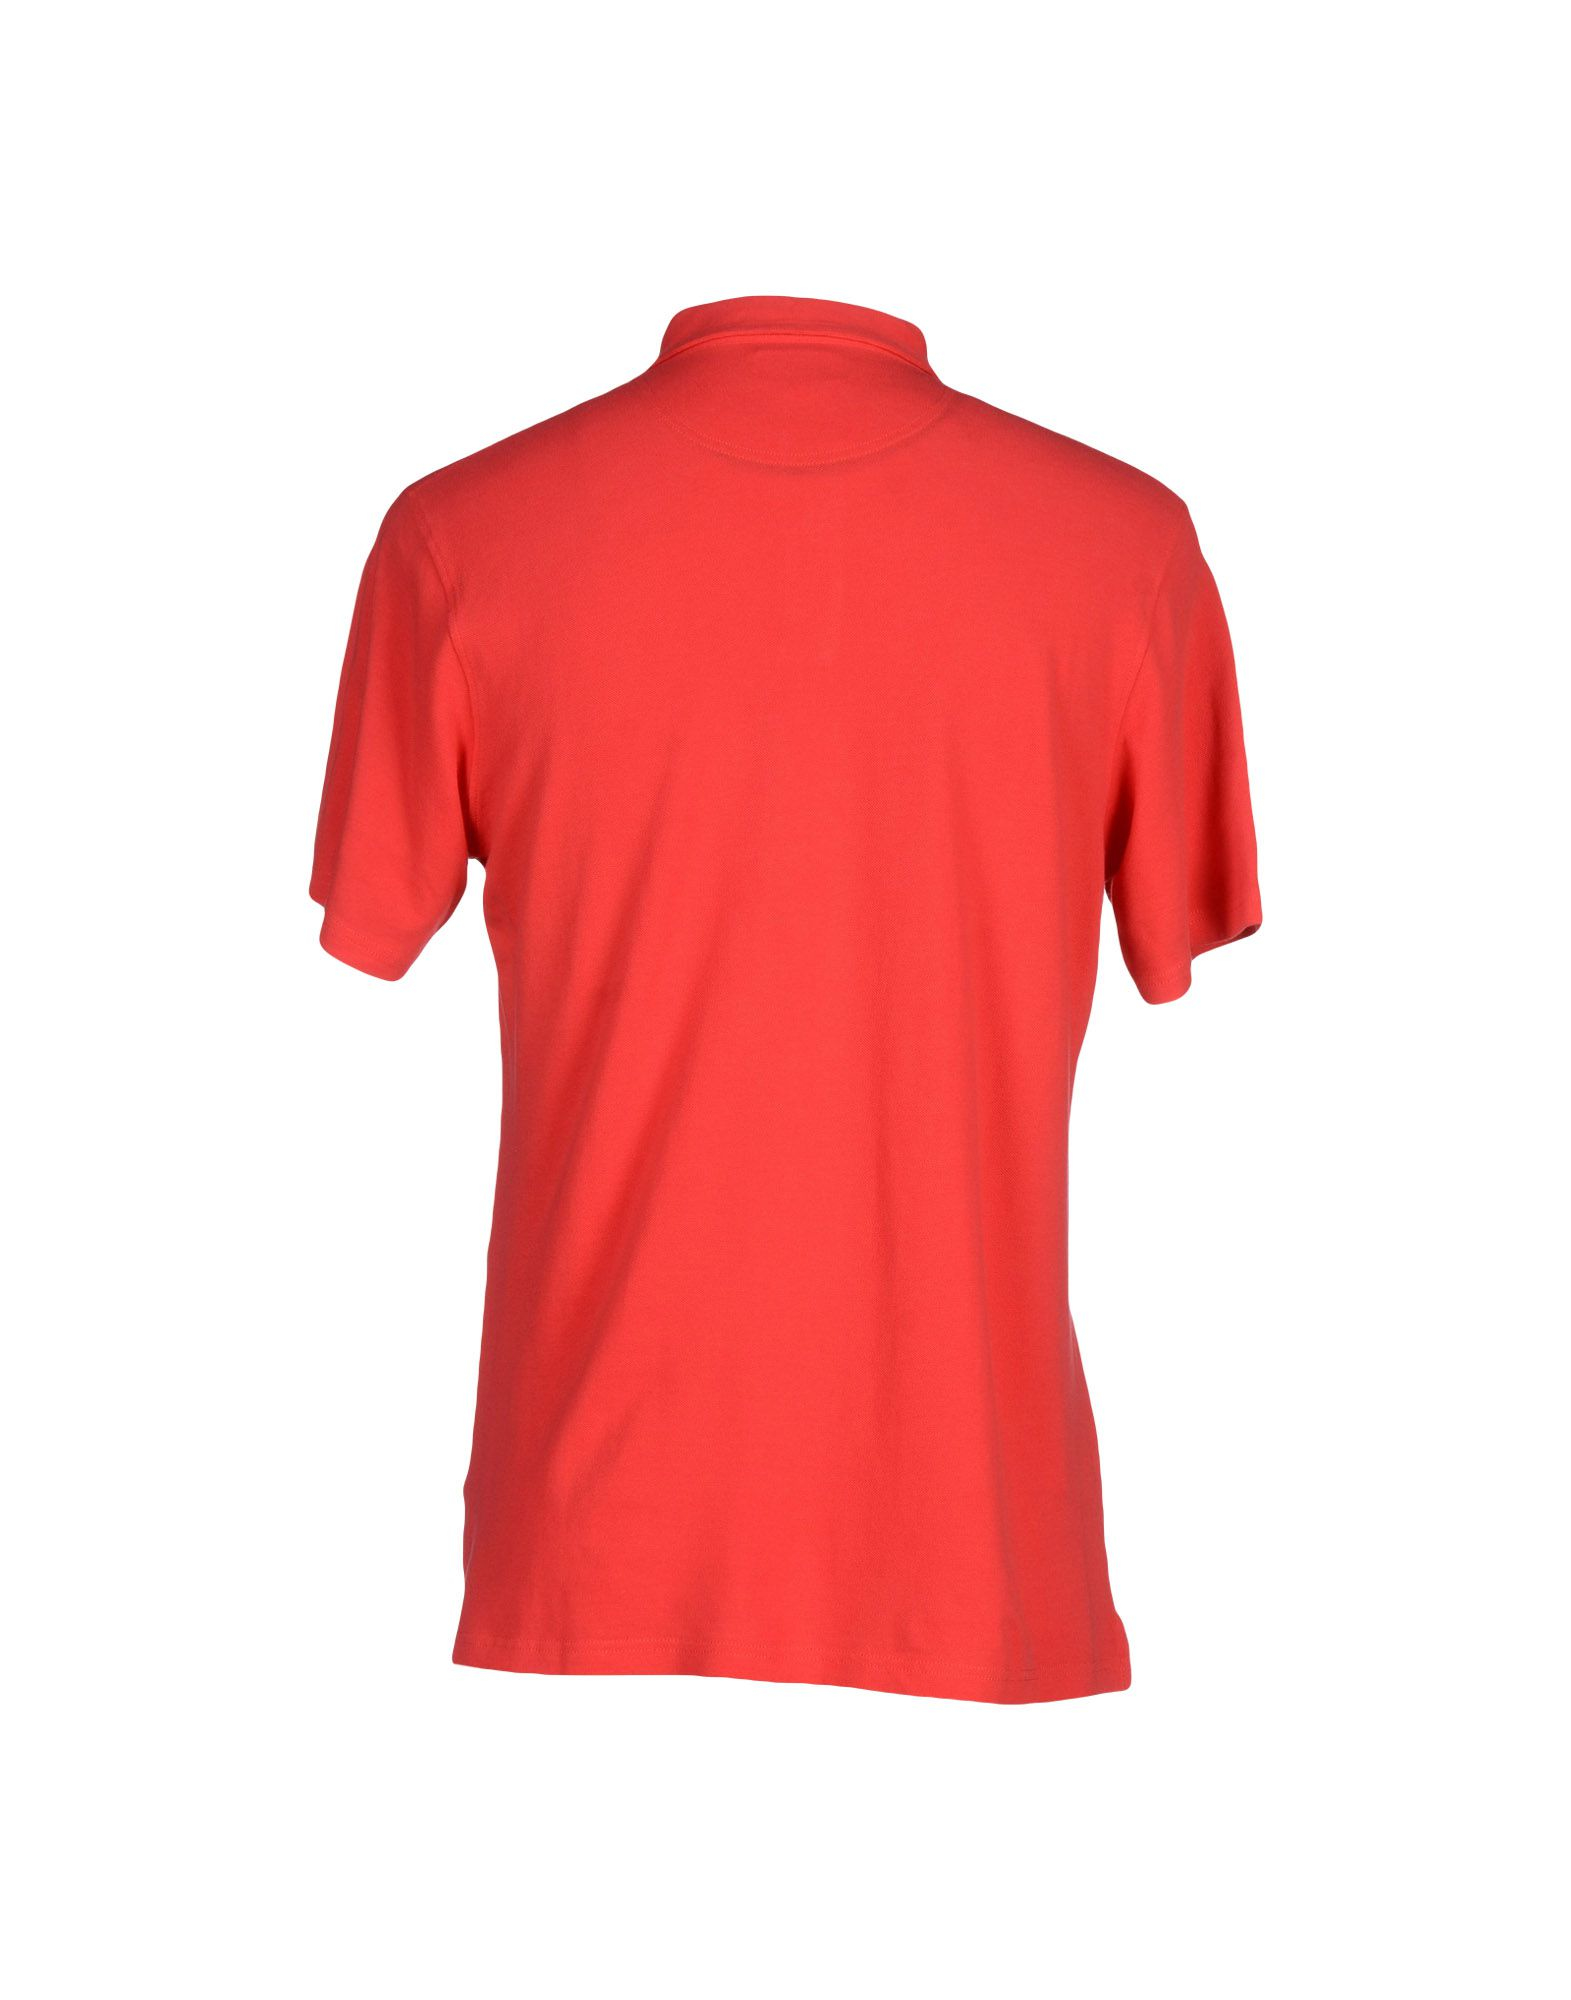 Hartford polo shirt in red for men lyst for T shirt printing hartford ct